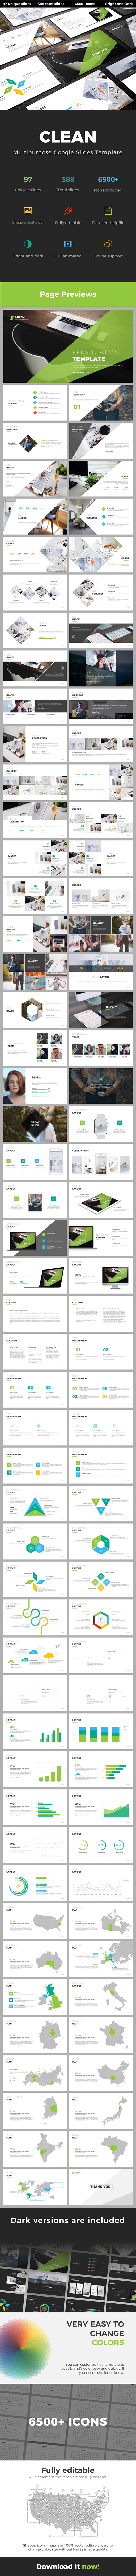 Clean Multipurpose Google Slides Template - Google Slides Presentation Templates